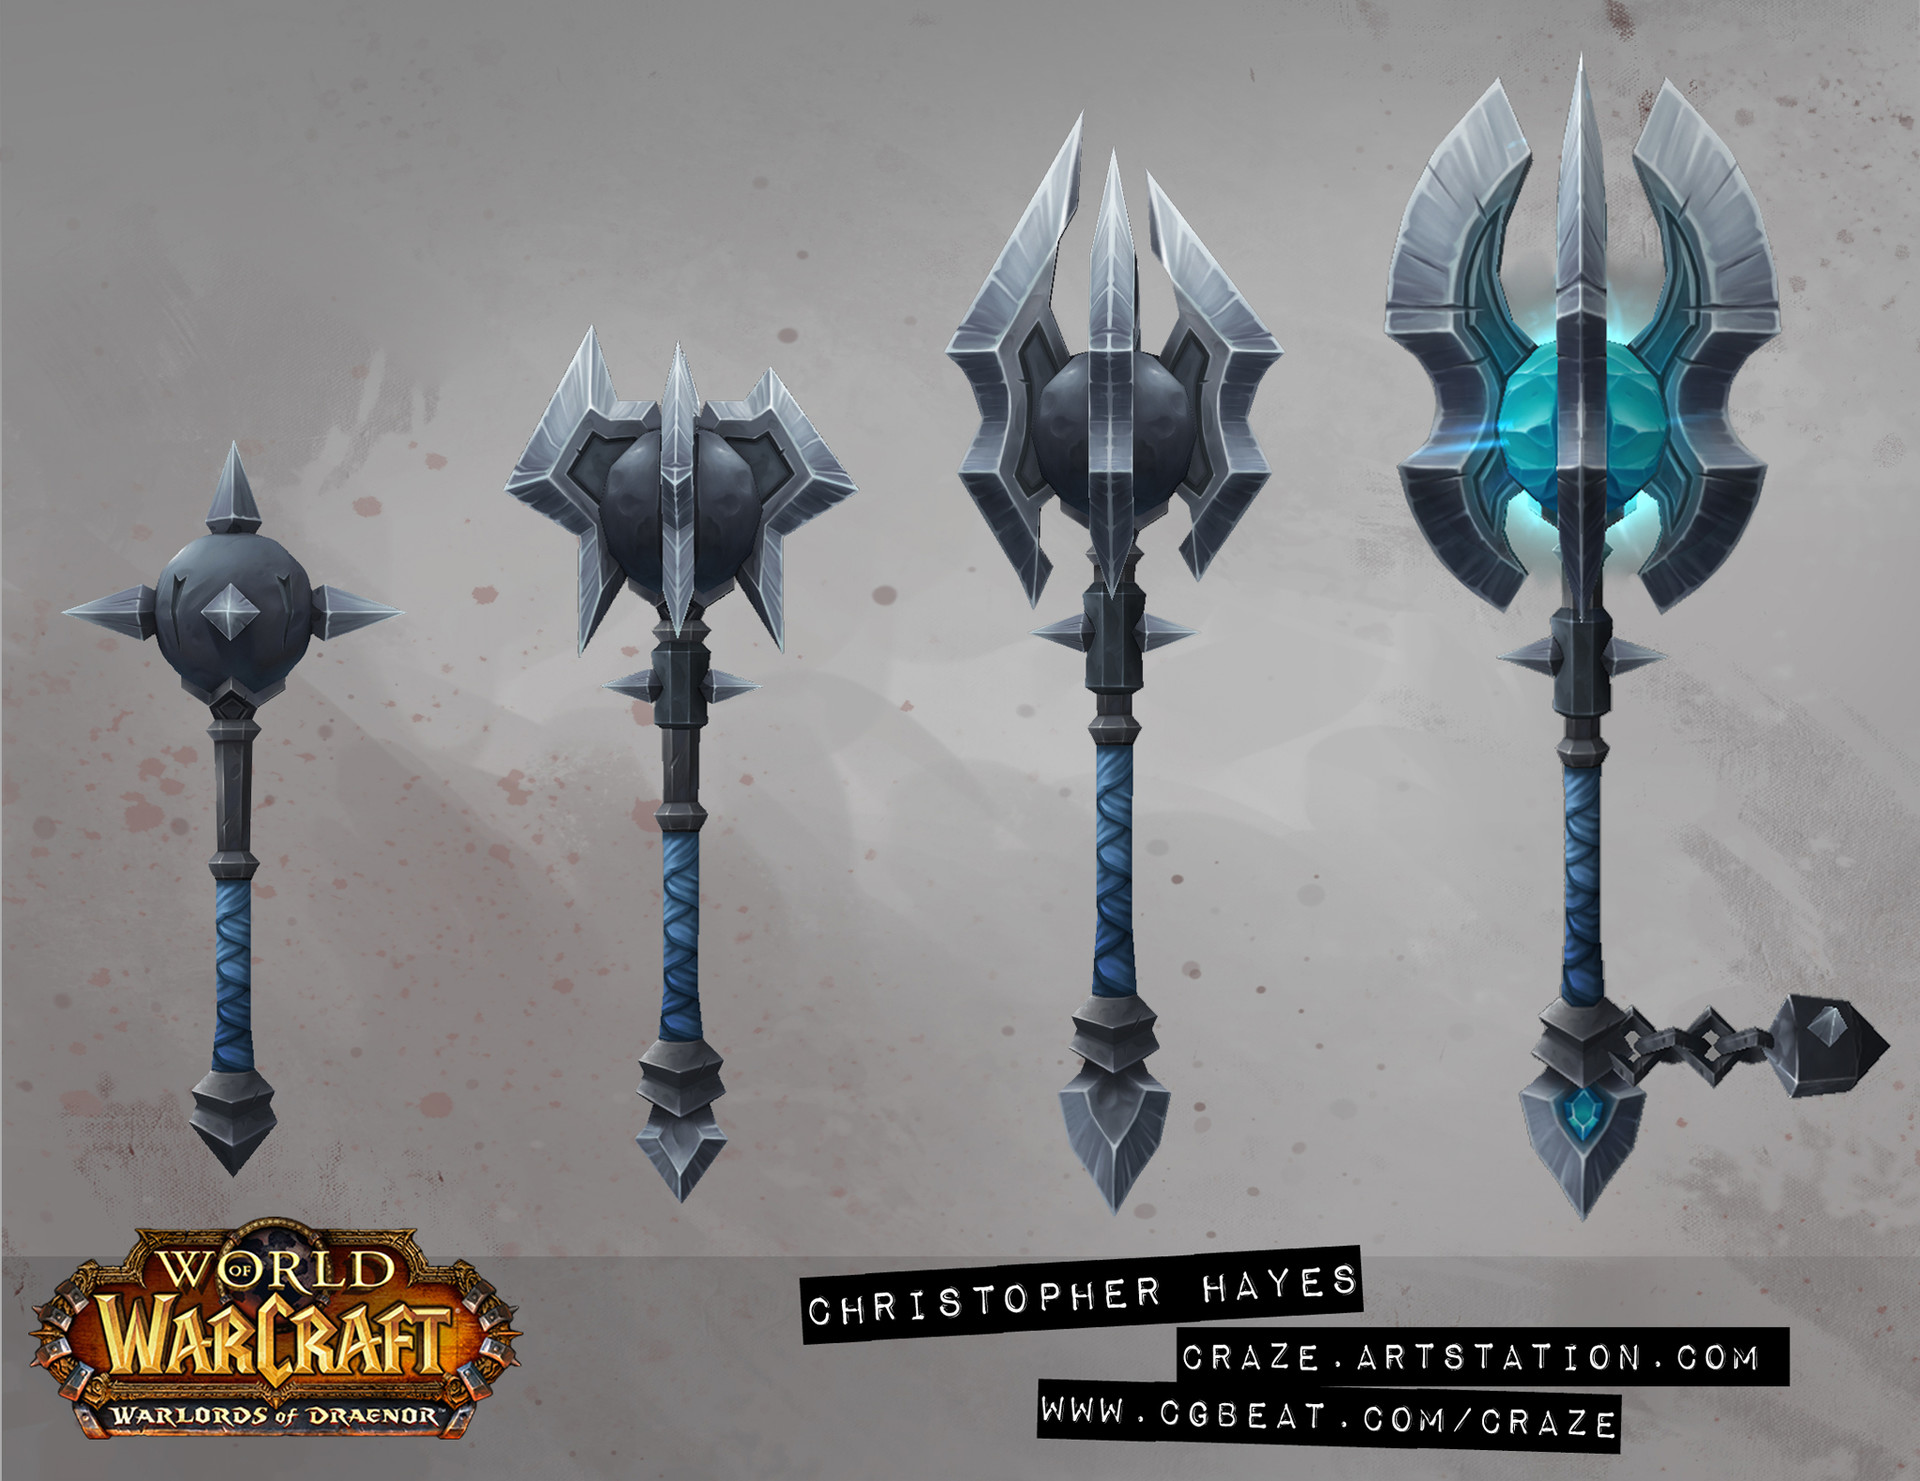 Christopher hayes axe crafted draenor 02